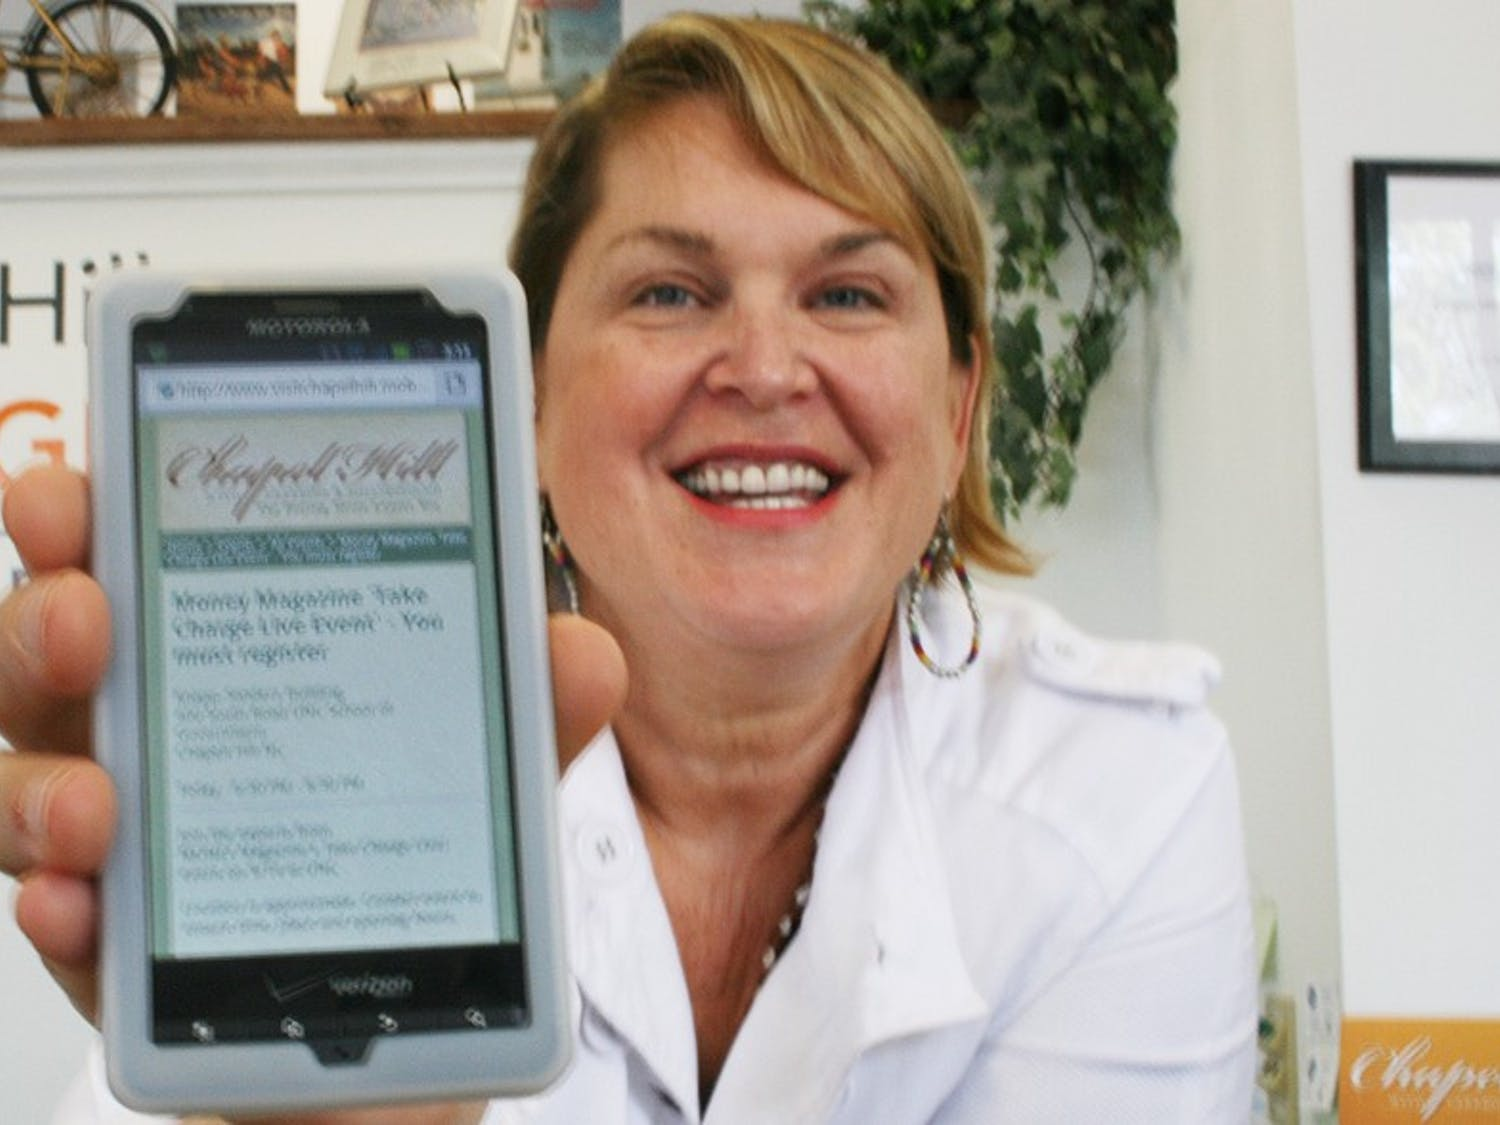 Chapel Hill is moving towards high-tech services; Laurie Pallcioli and Dewey Mooring are launching a new application for tourists and have been working hard at the Chapel Hill tourism office on West Franklin Street.